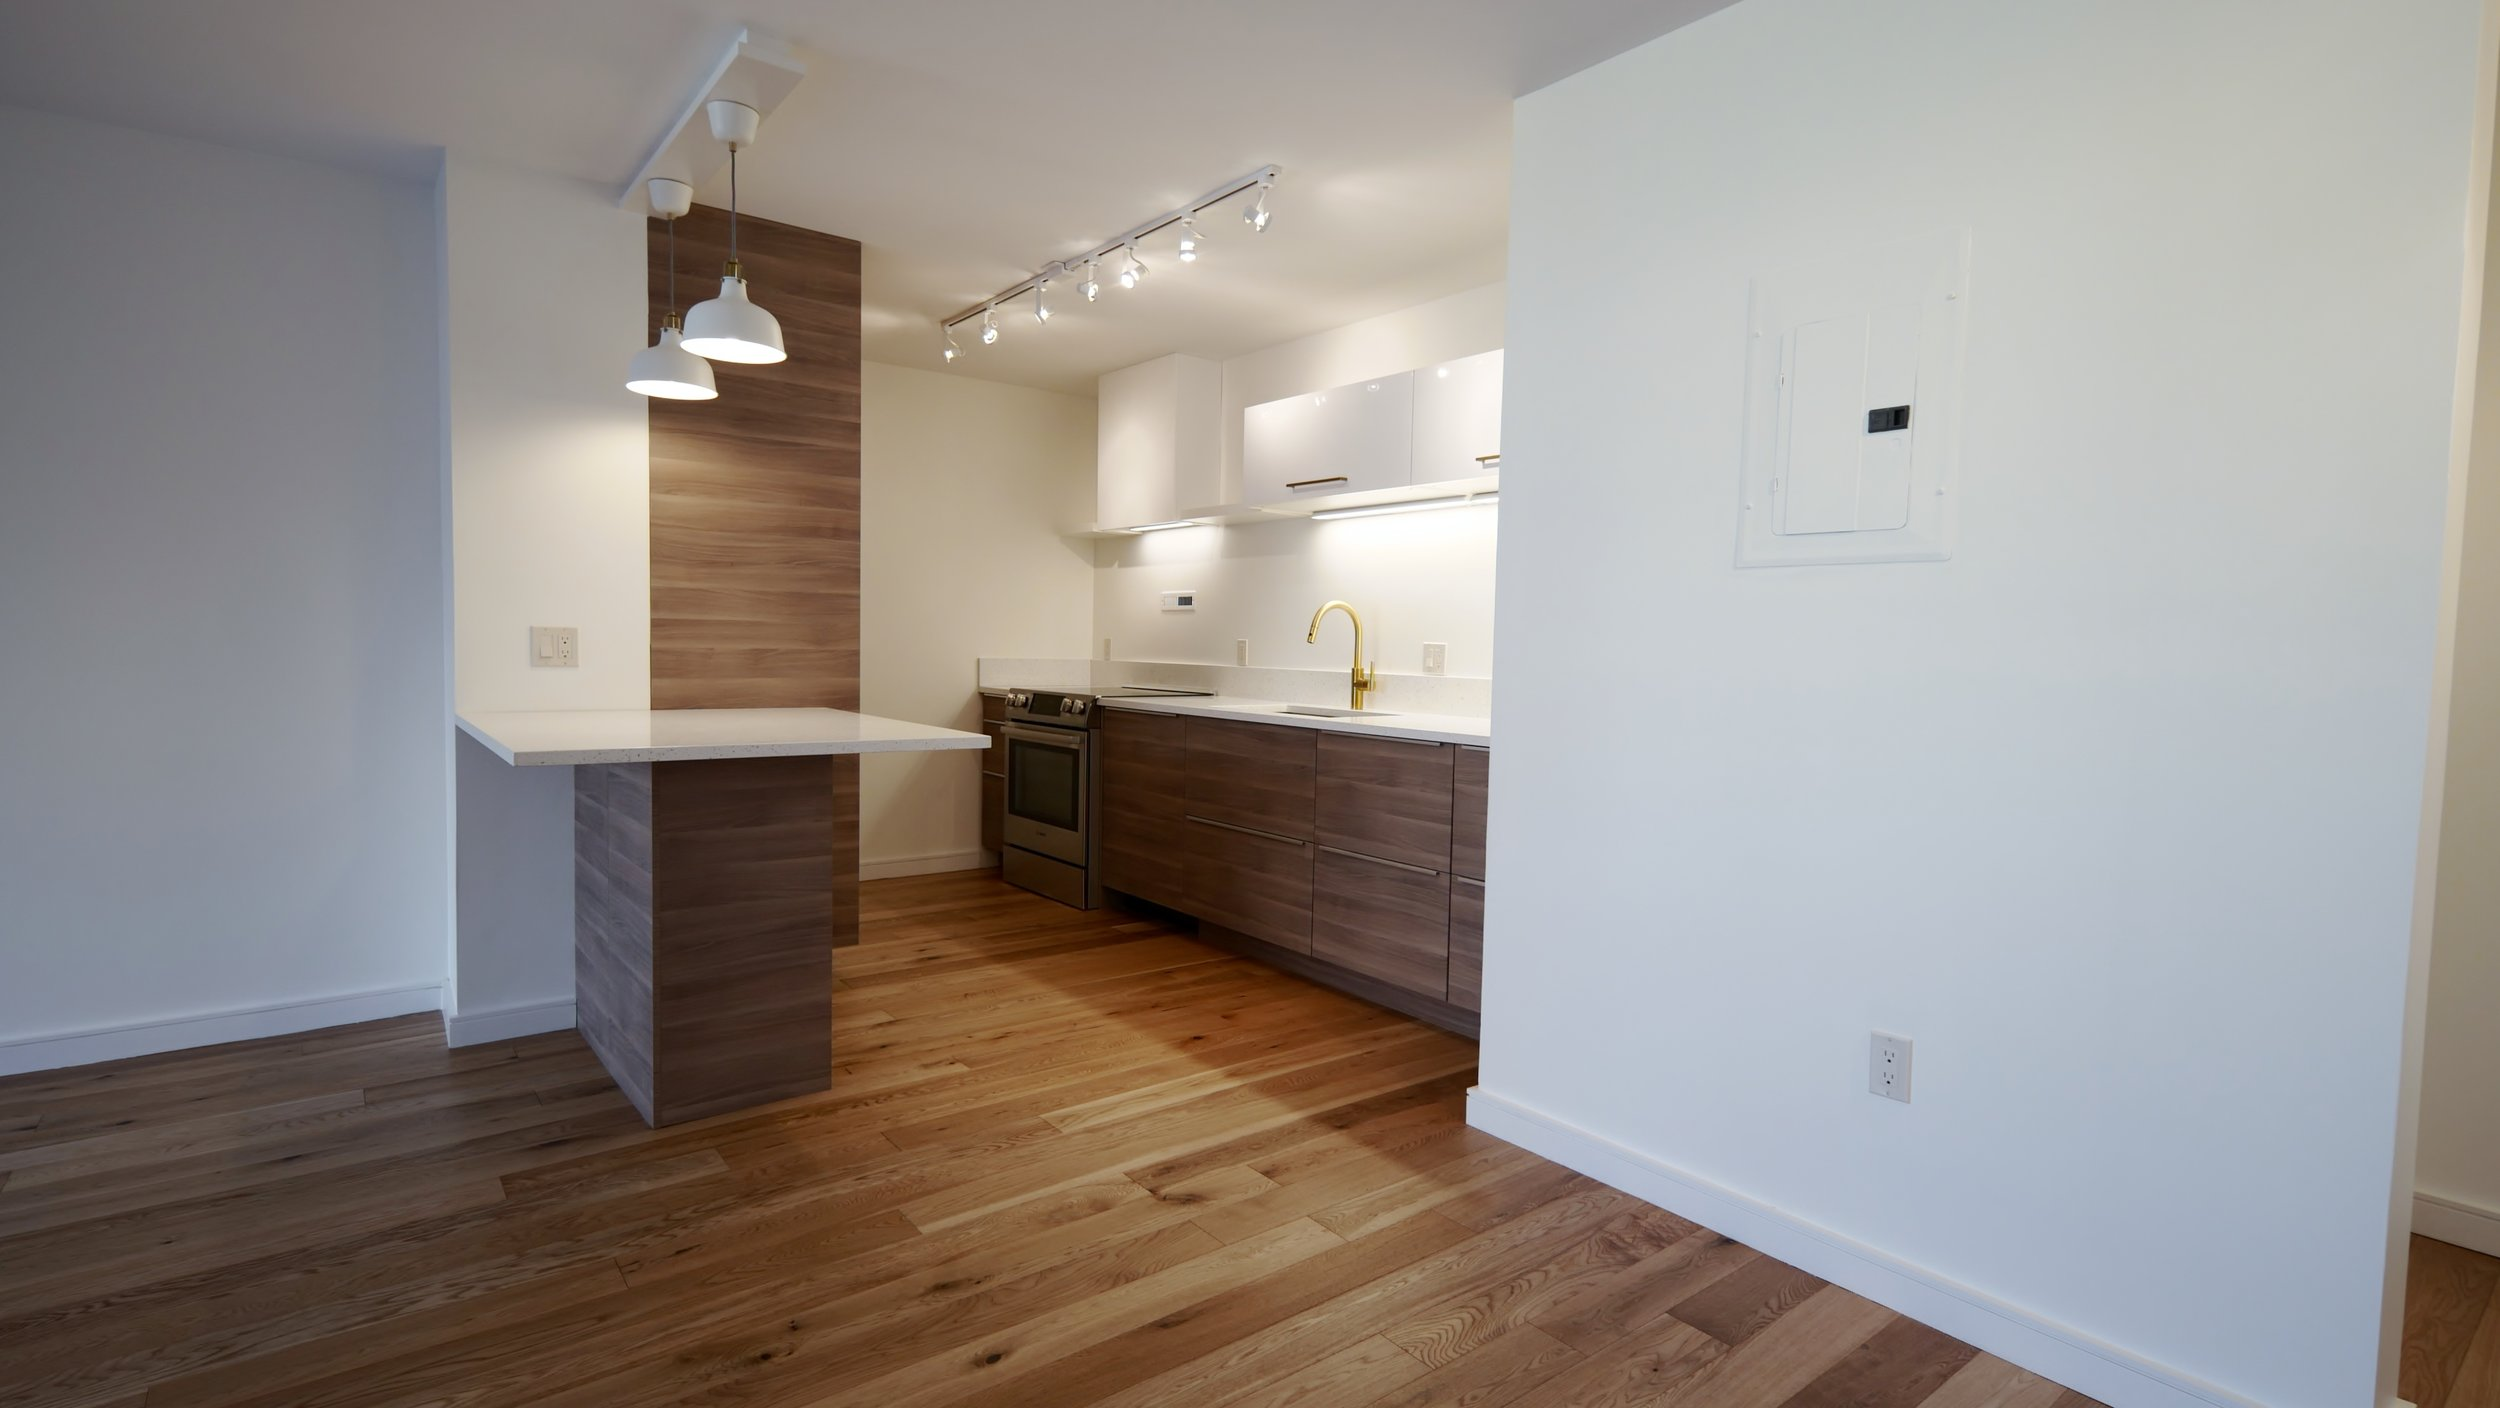 ON THE MARKET FOR SALE  50 Longwood Ave Unit 319 Brookline, MA 02446  Full Amenity Building in Coolidge Corner. Concierge, Pool, Gym.  Renovated 1 Bed/1 Bath Condo with 1 Underground Deeded Parking Spot.    Listing Price: $649,000